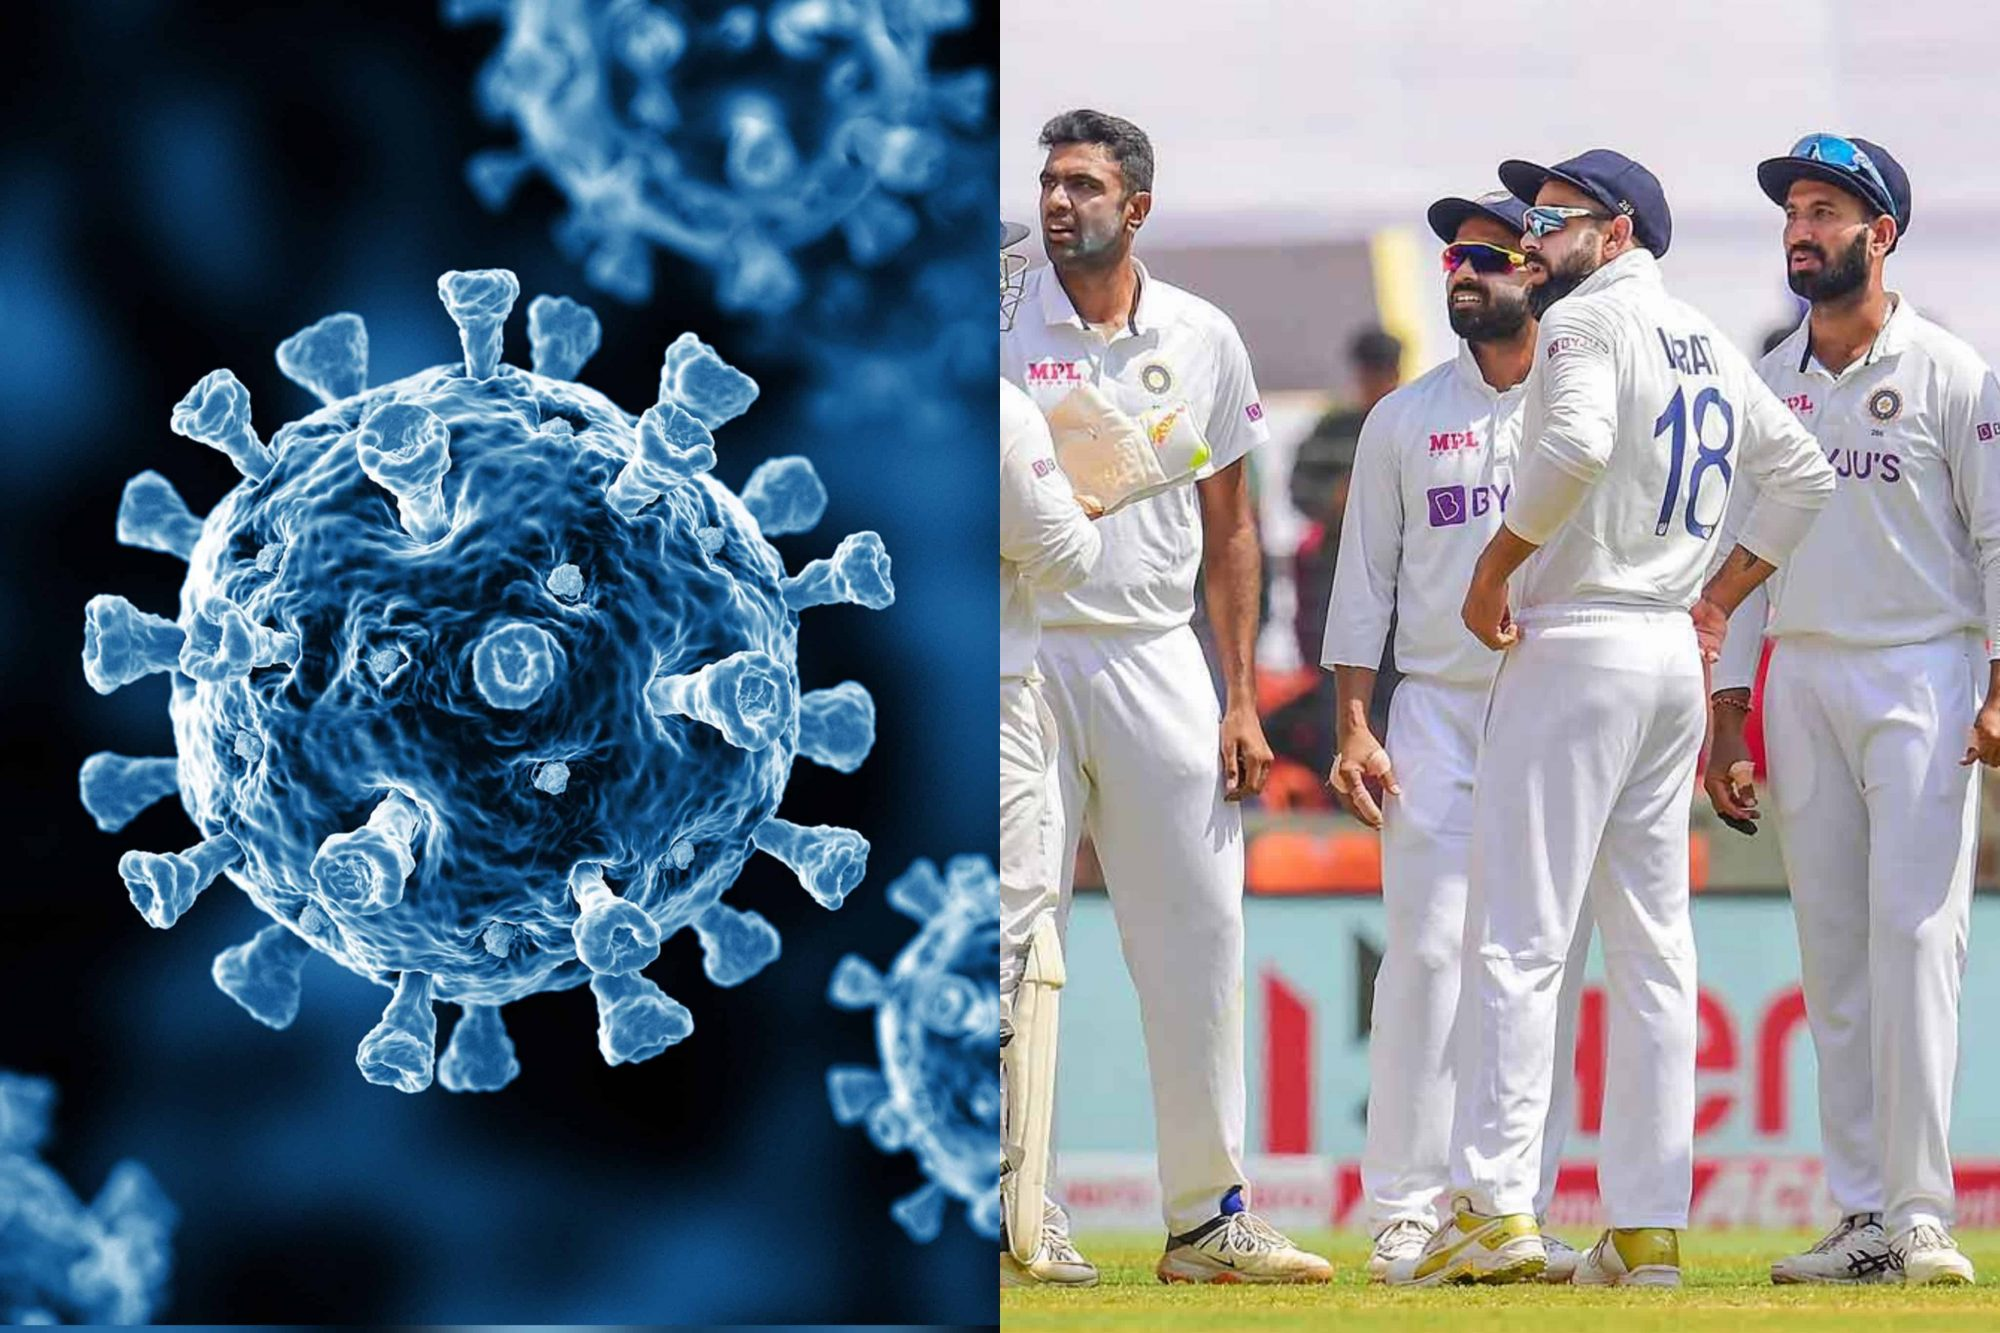 Indian Player Tests Positive For COVID-19, Quarantined - Report